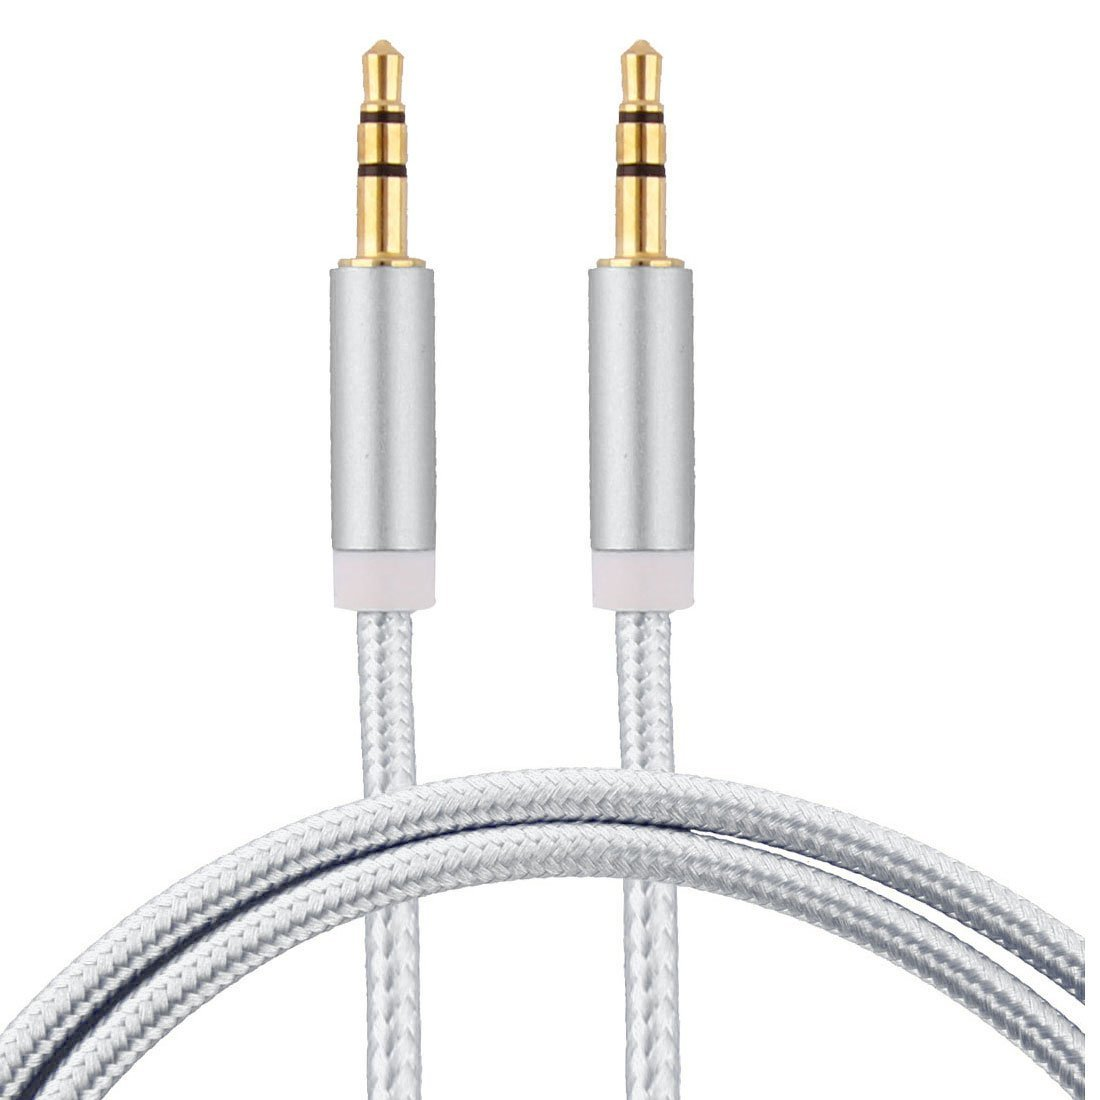 Amazon.com: eDealMax Nylon Inicio Mini Media Player teléfono inteligente DE 3,5 mm Macho a Macho Cable de Audio 1M 3,3 pies 2 PCS Dorado tono de la astilla: ...